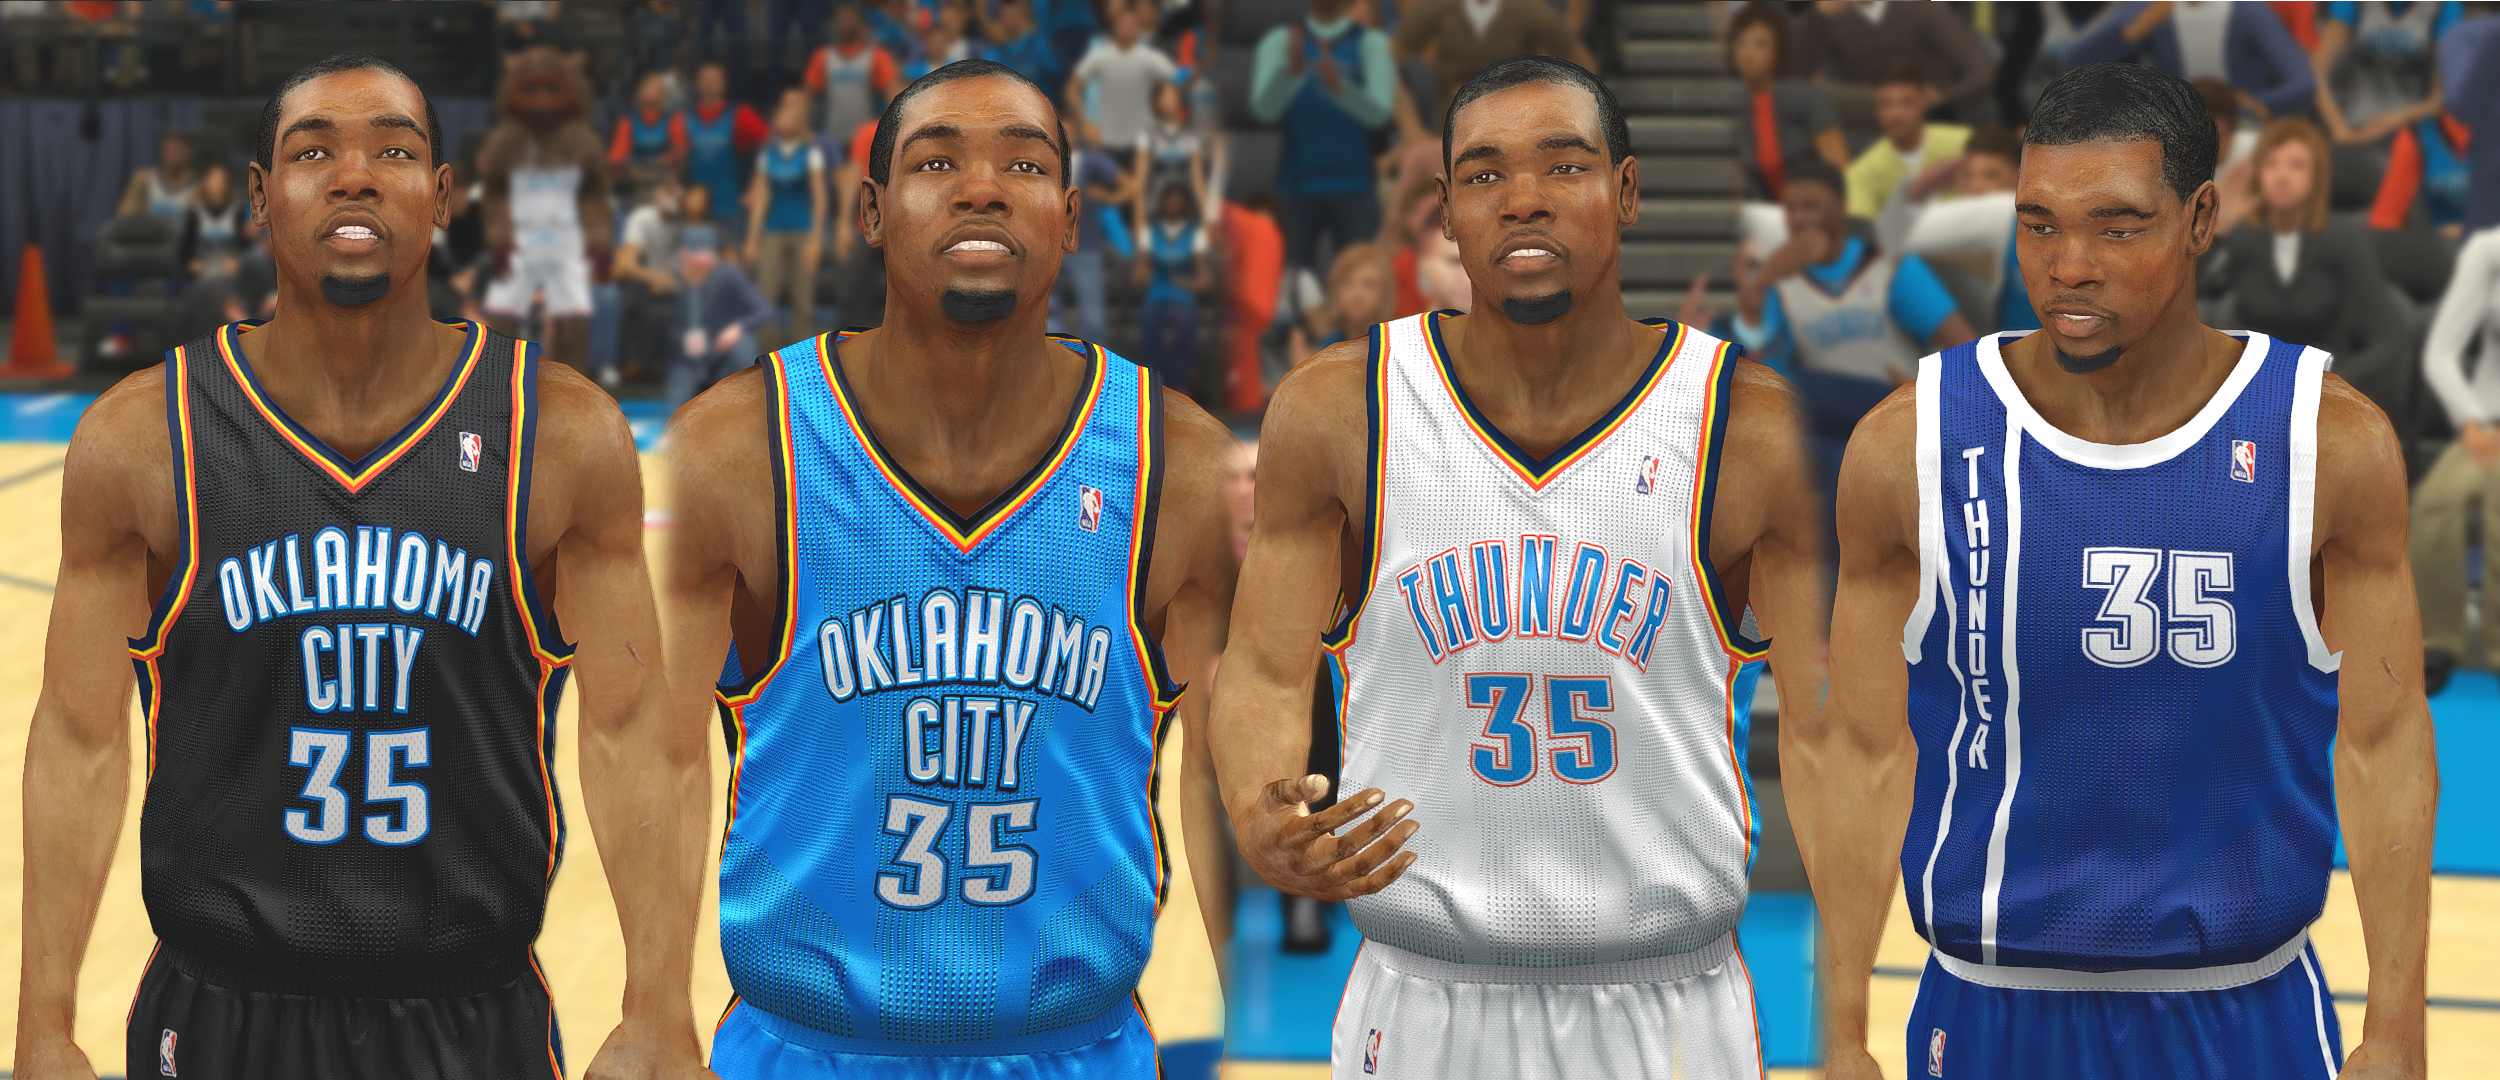 Oklahoma City Thunder Jersey Update